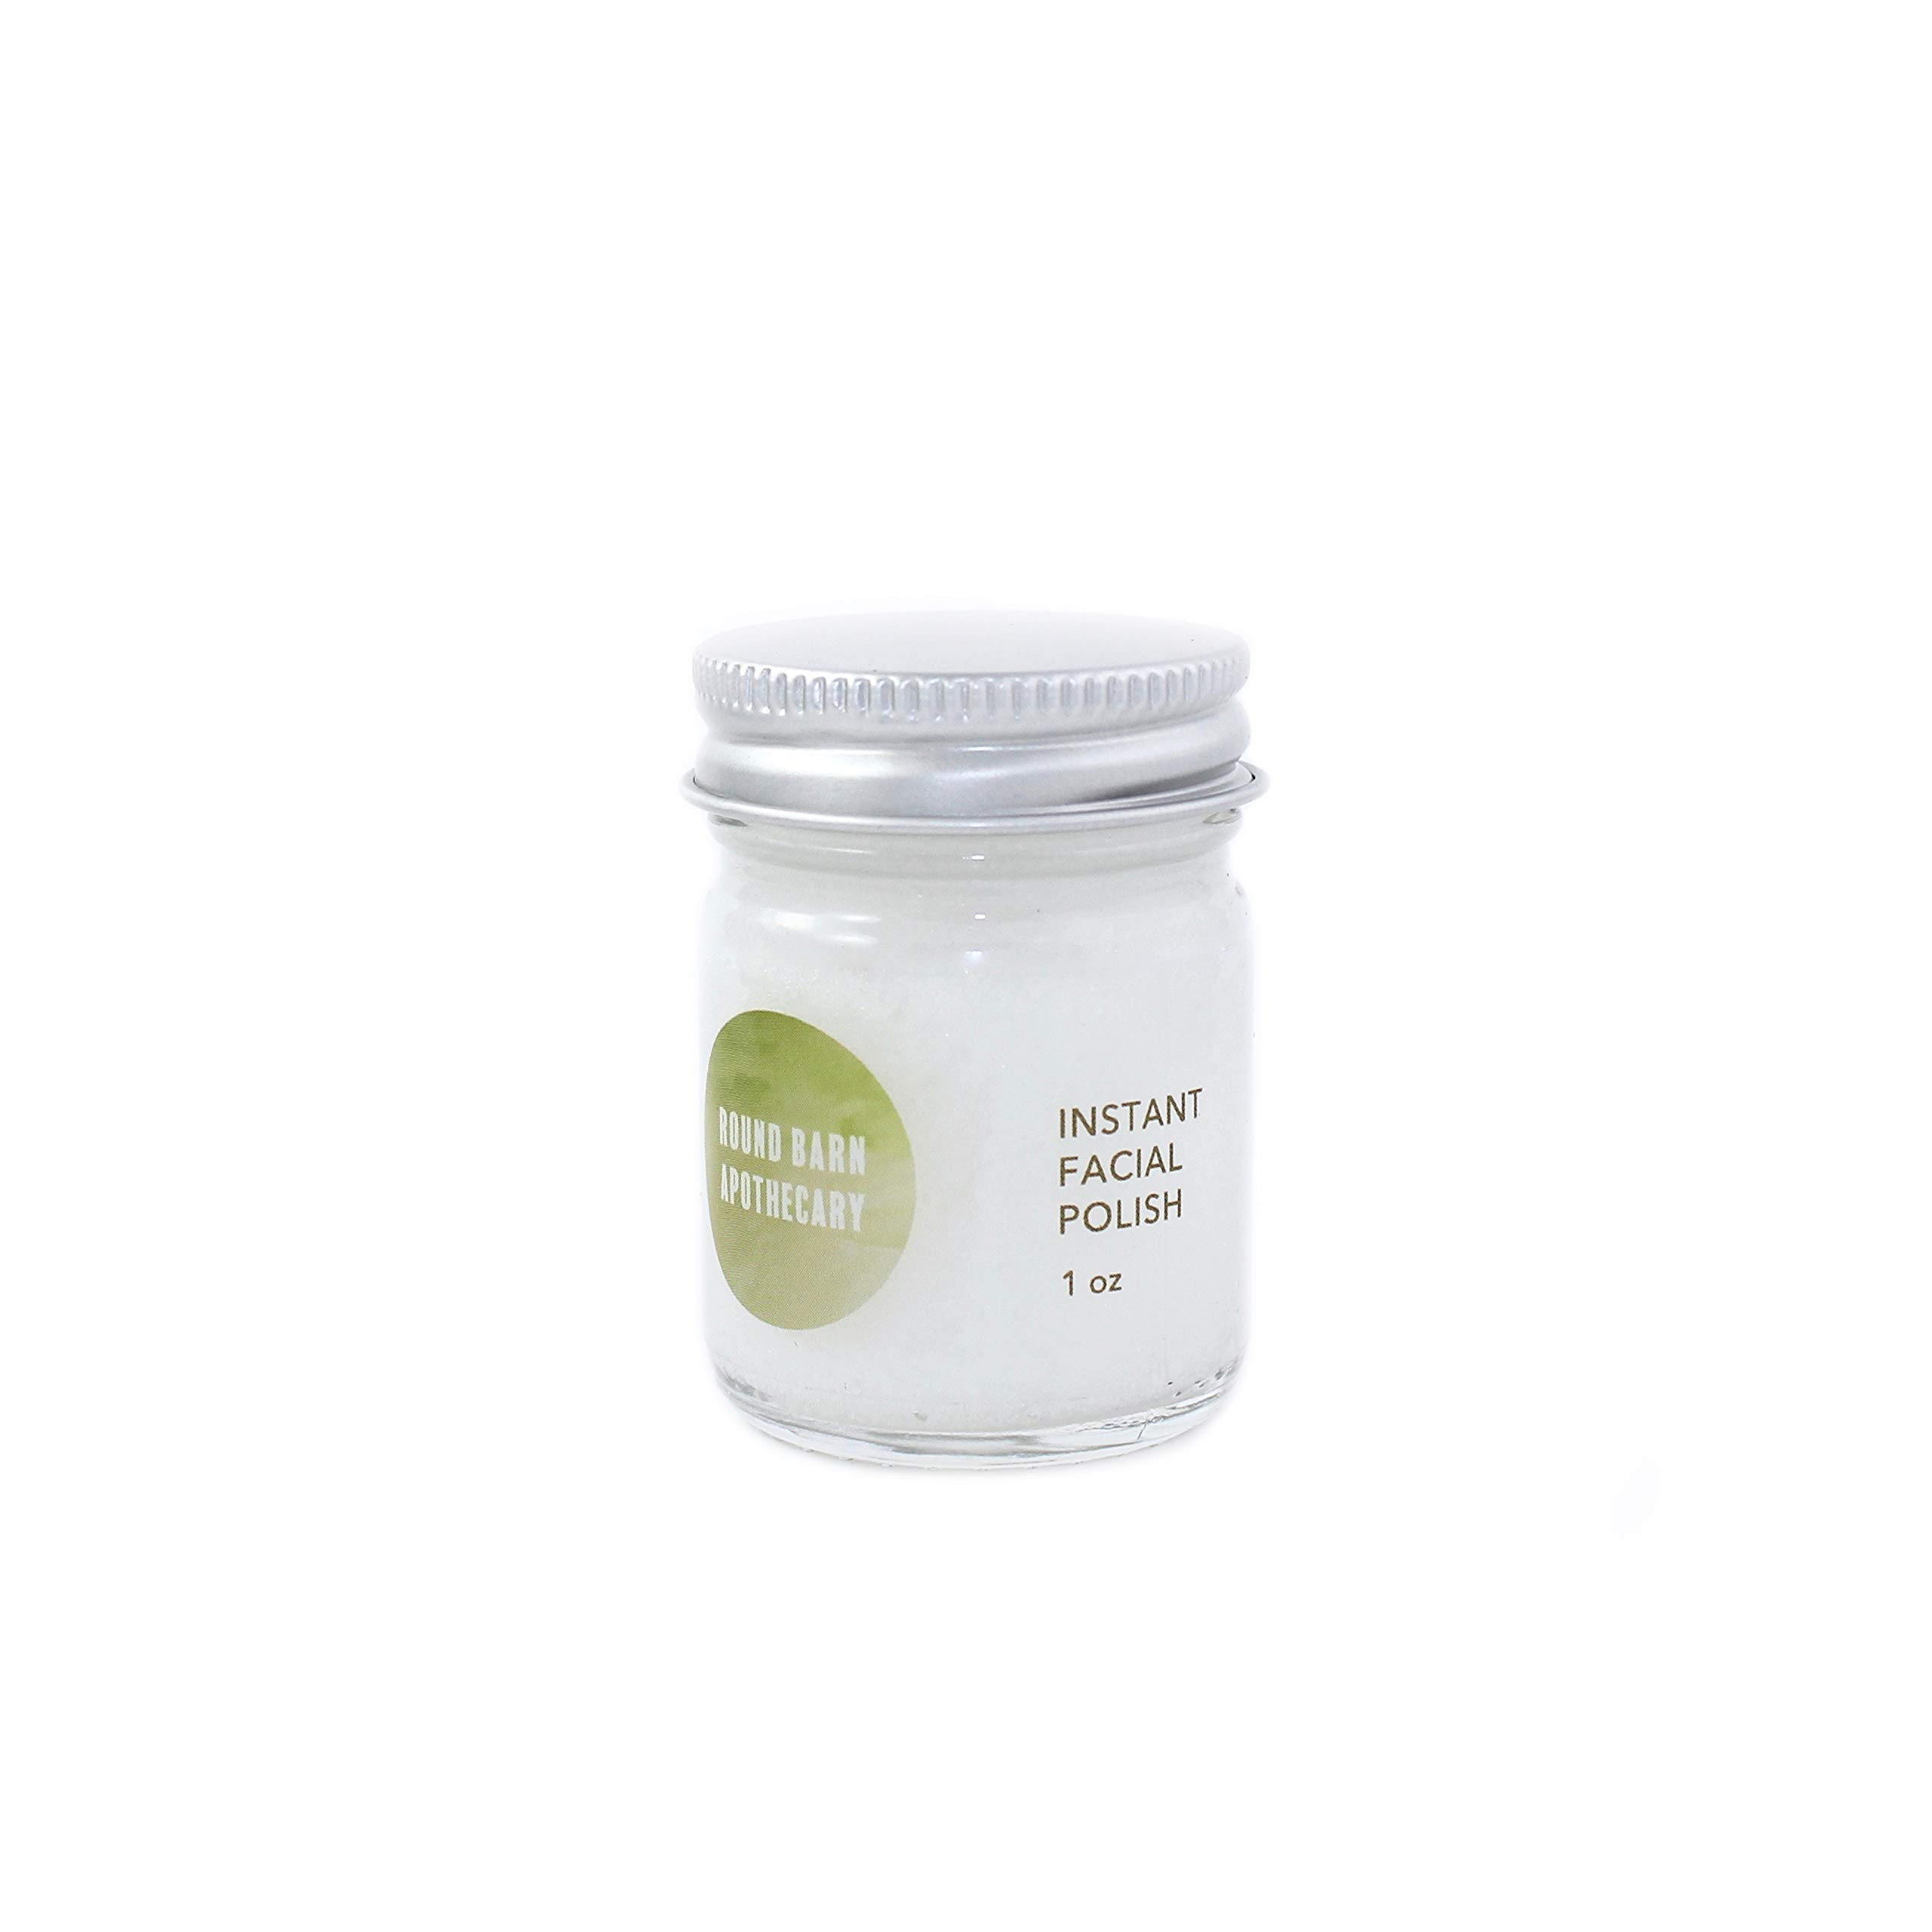 Instant Facial Polish by Round Barn Apothecary